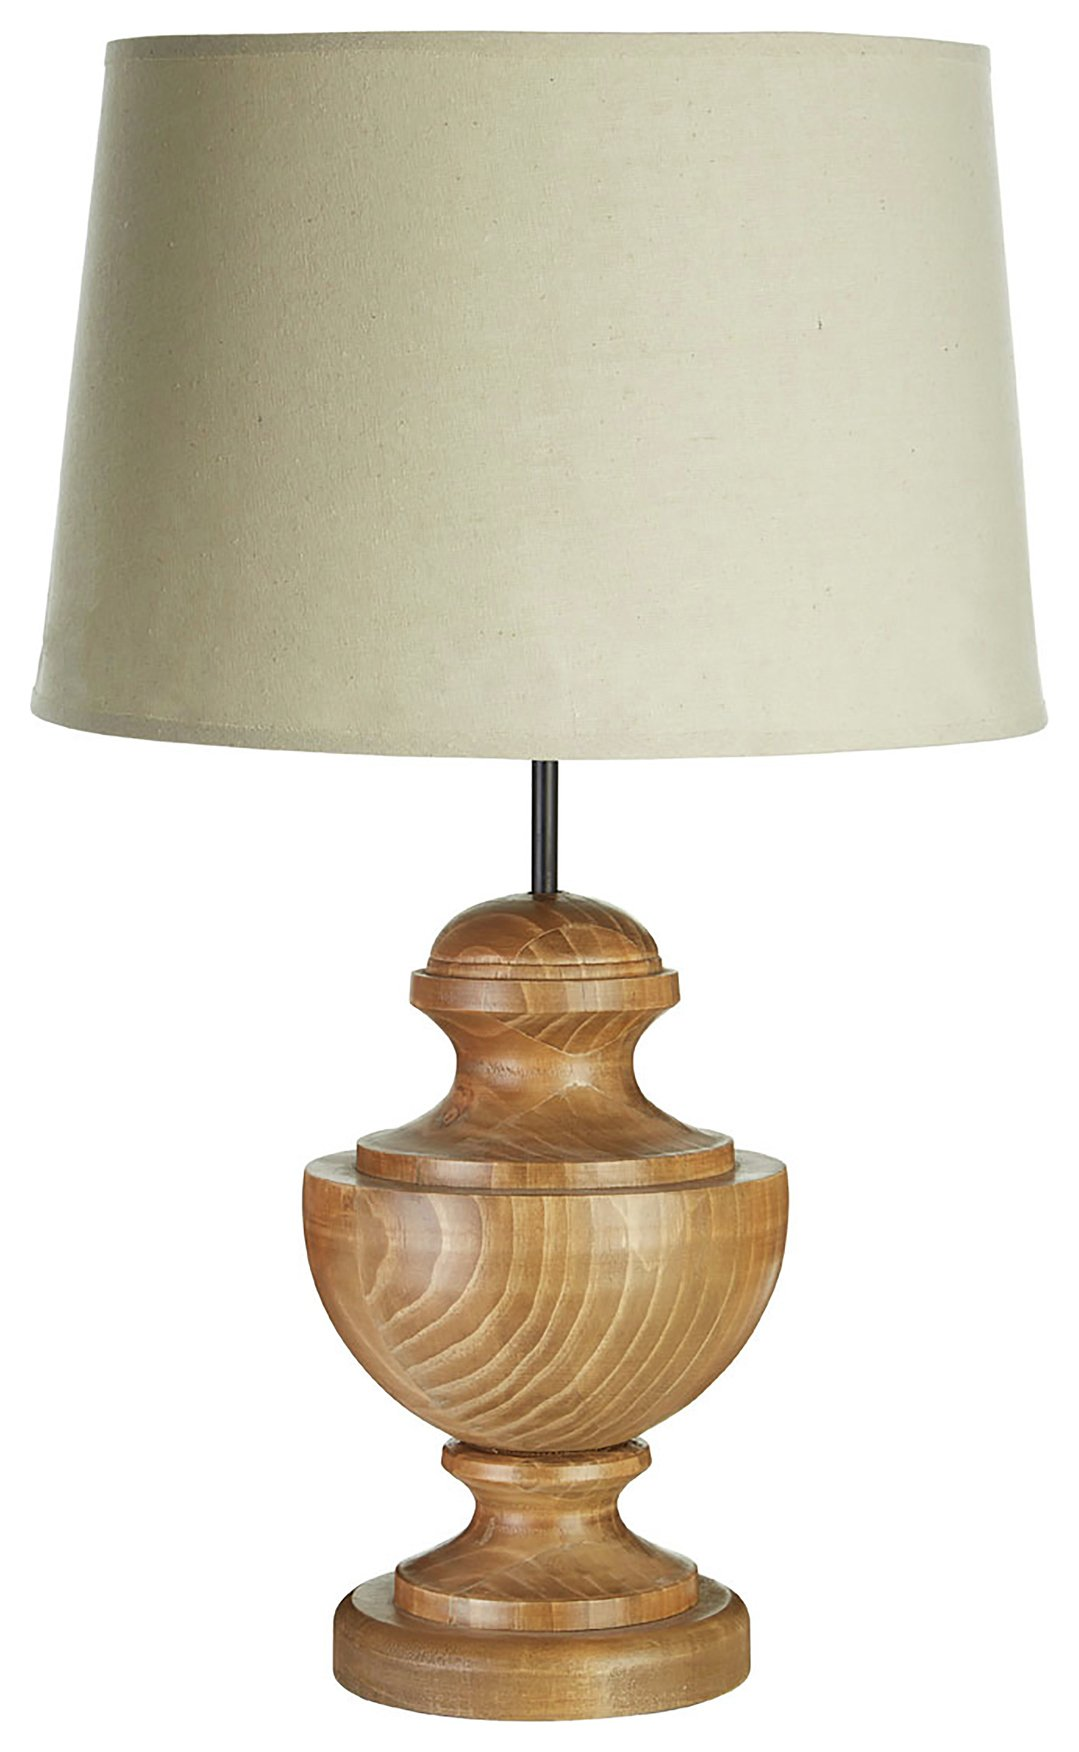 Image of Wooden - Table Lamp